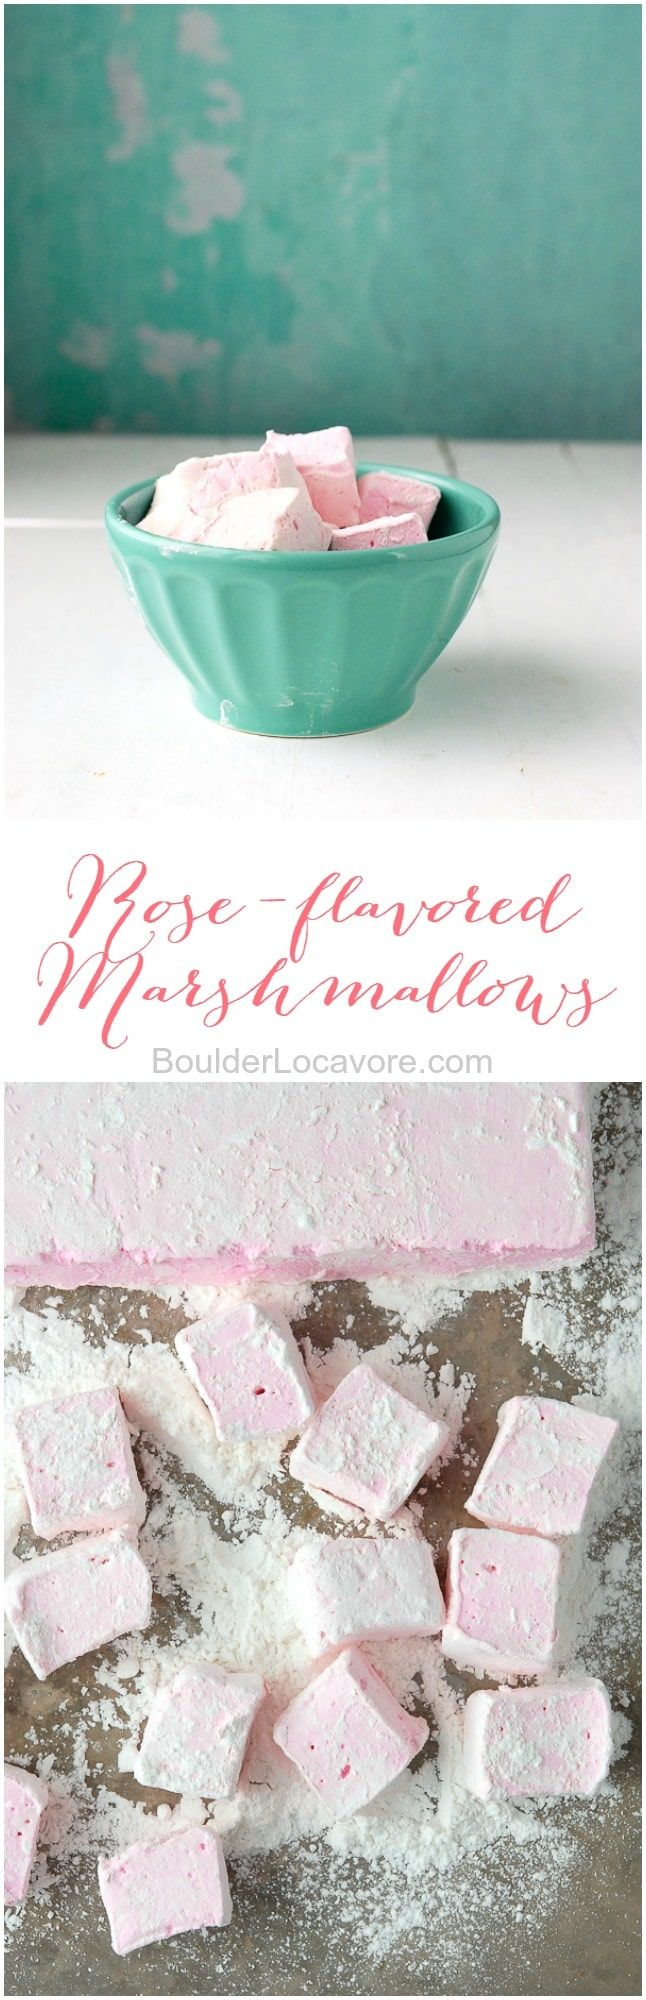 These beguiling treats are a surprise to all who eat them: Rose-flavored Marshmallows (recipe). They taste as roses smell! #flavoredmarshmallows